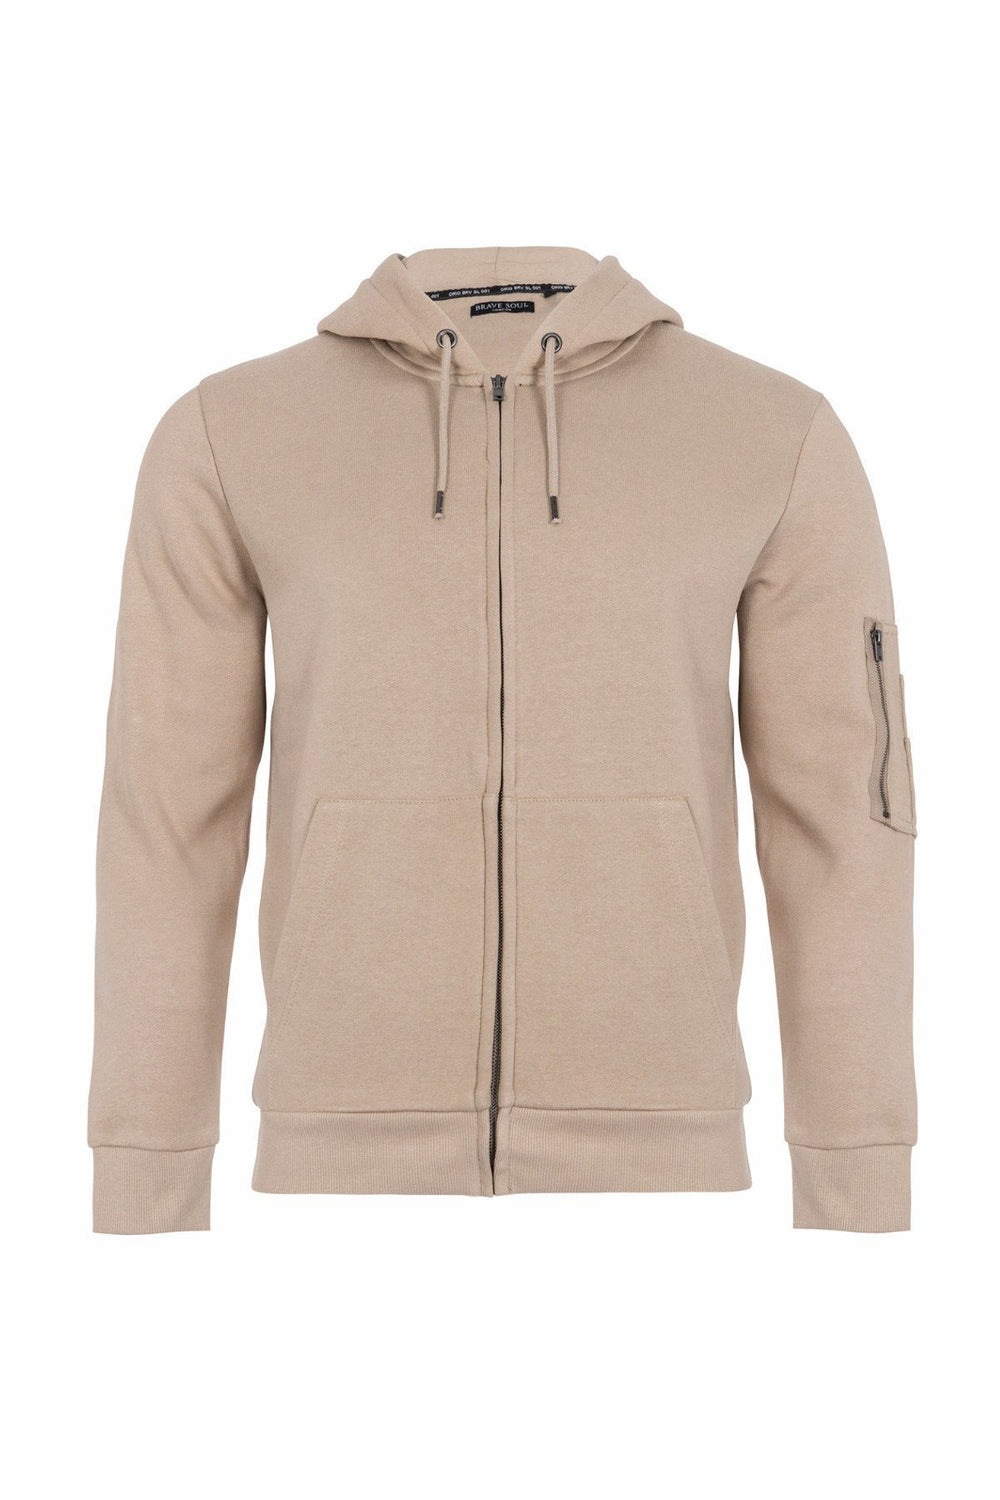 Jersey - Zipped Sleeve Hoodie Light Khaki